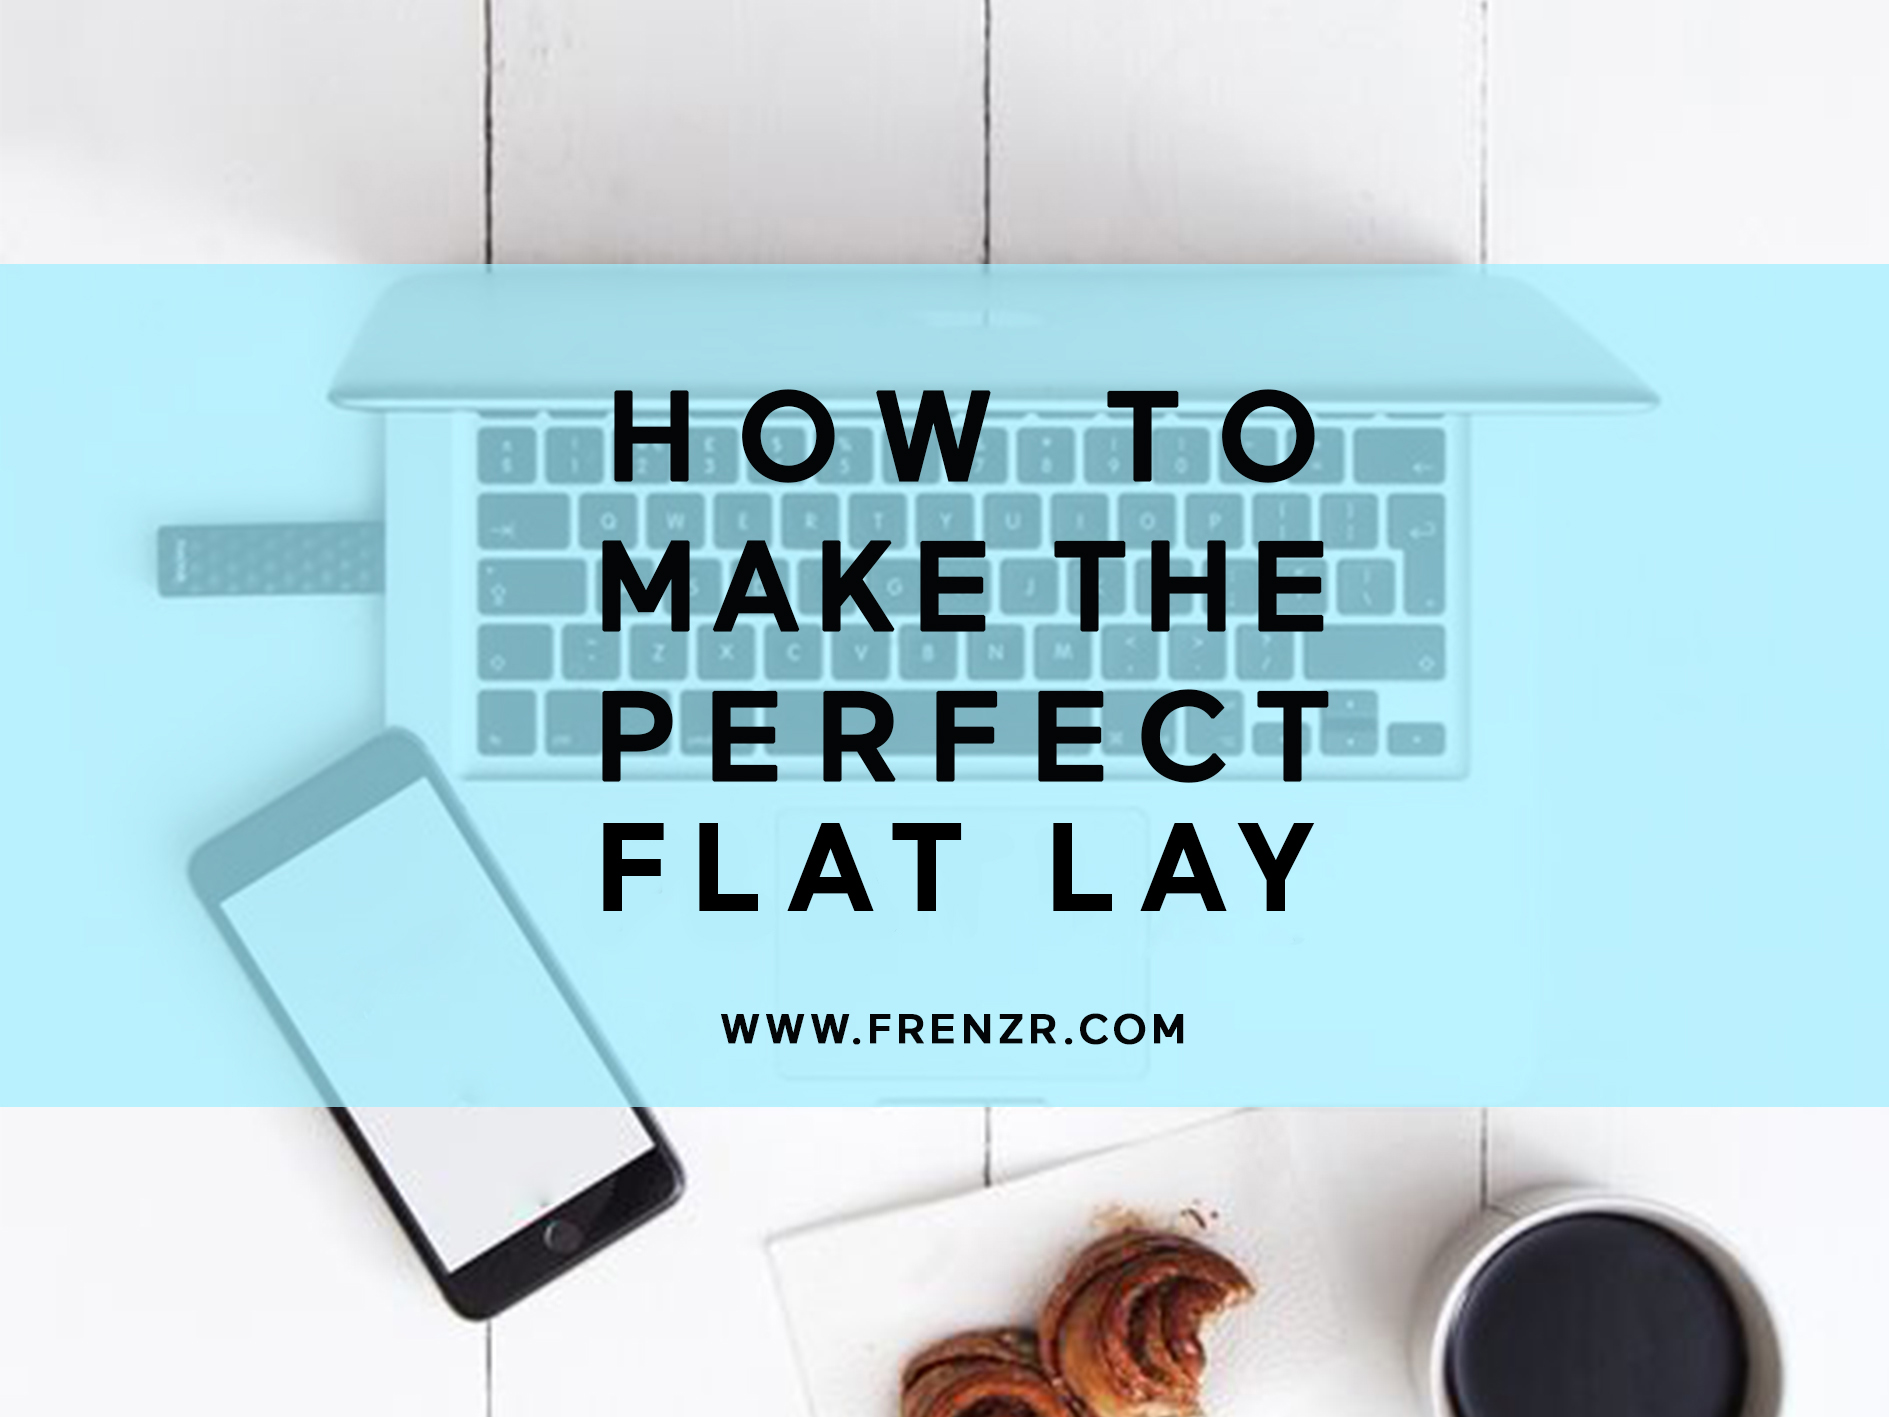 how to make the perfect flatlay